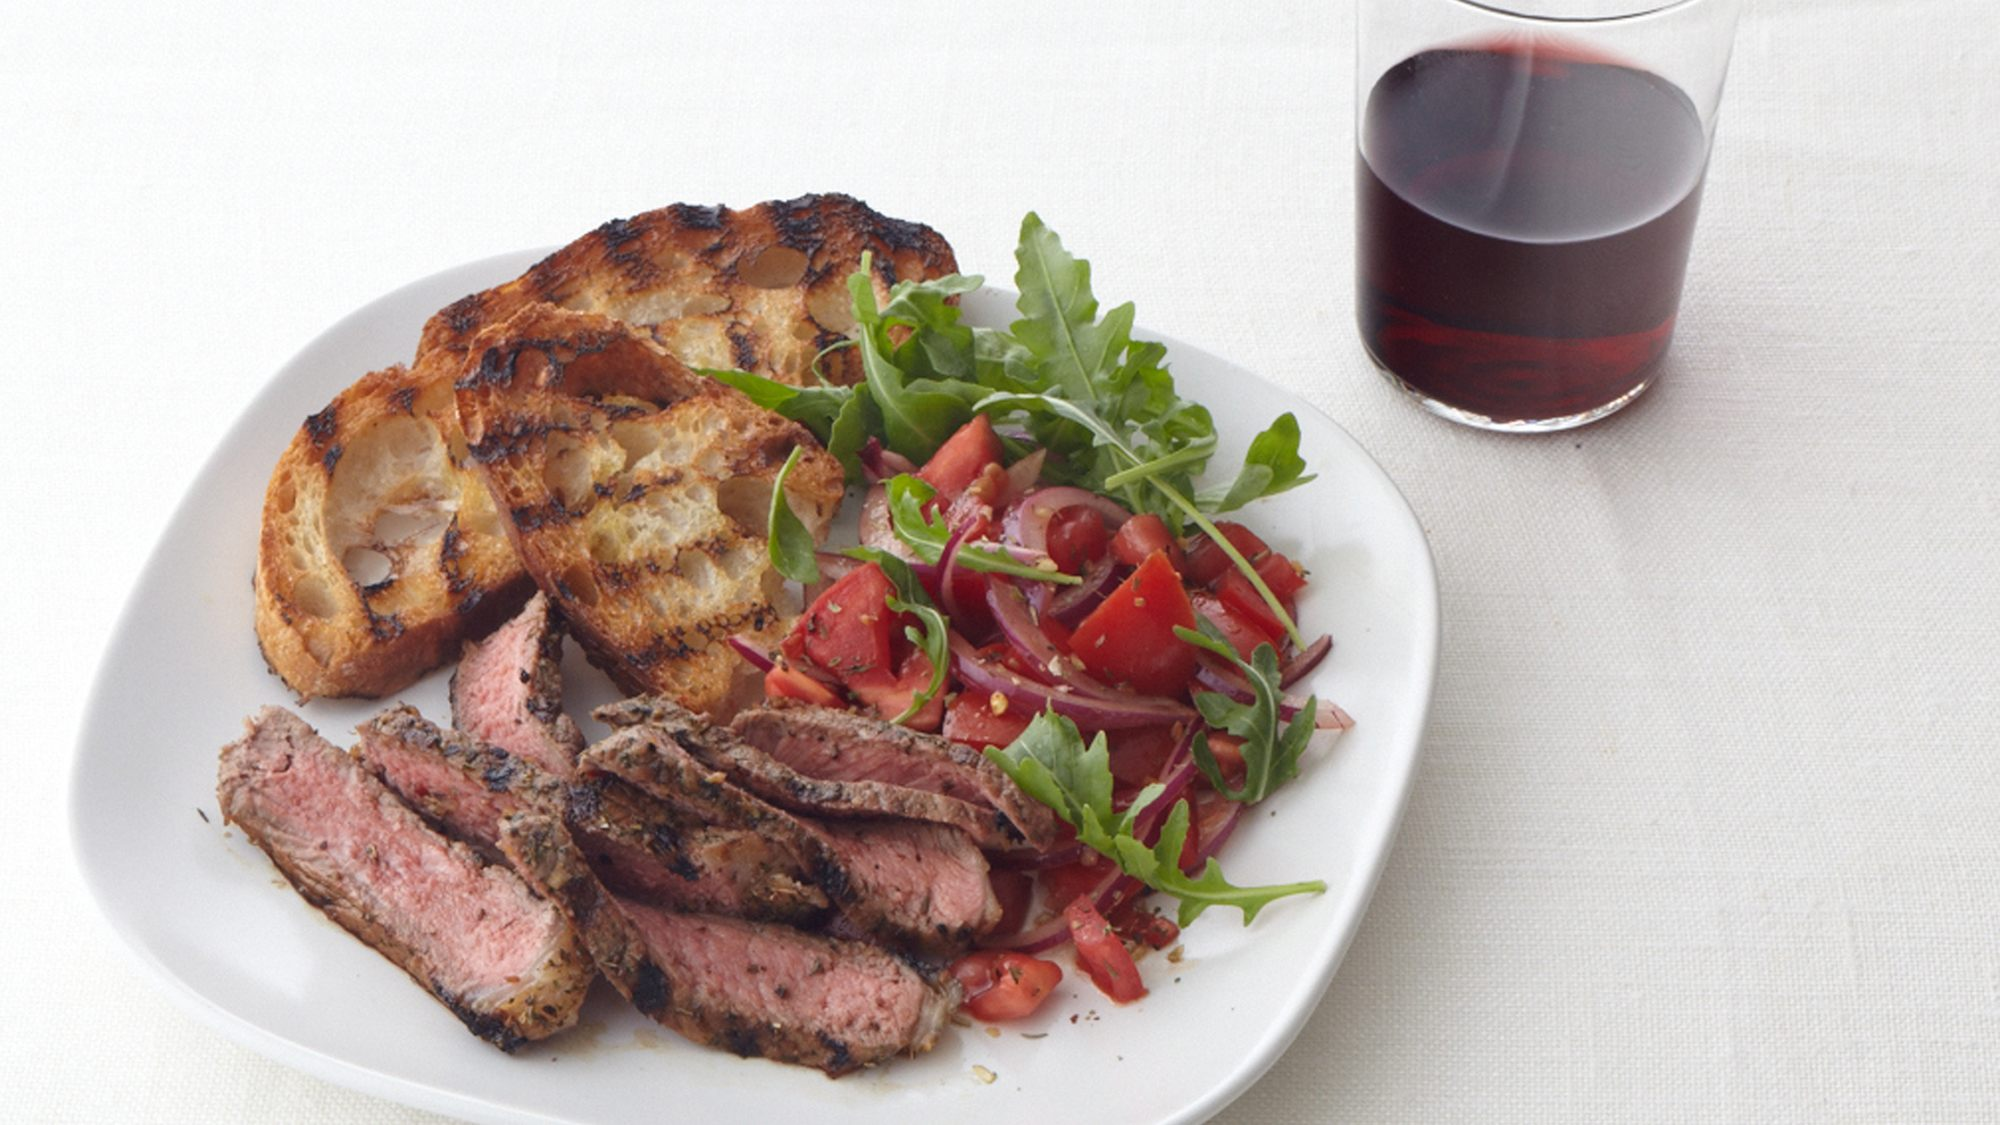 tuscan-grilled-steak-with-chopped-tomato-salad.jpg